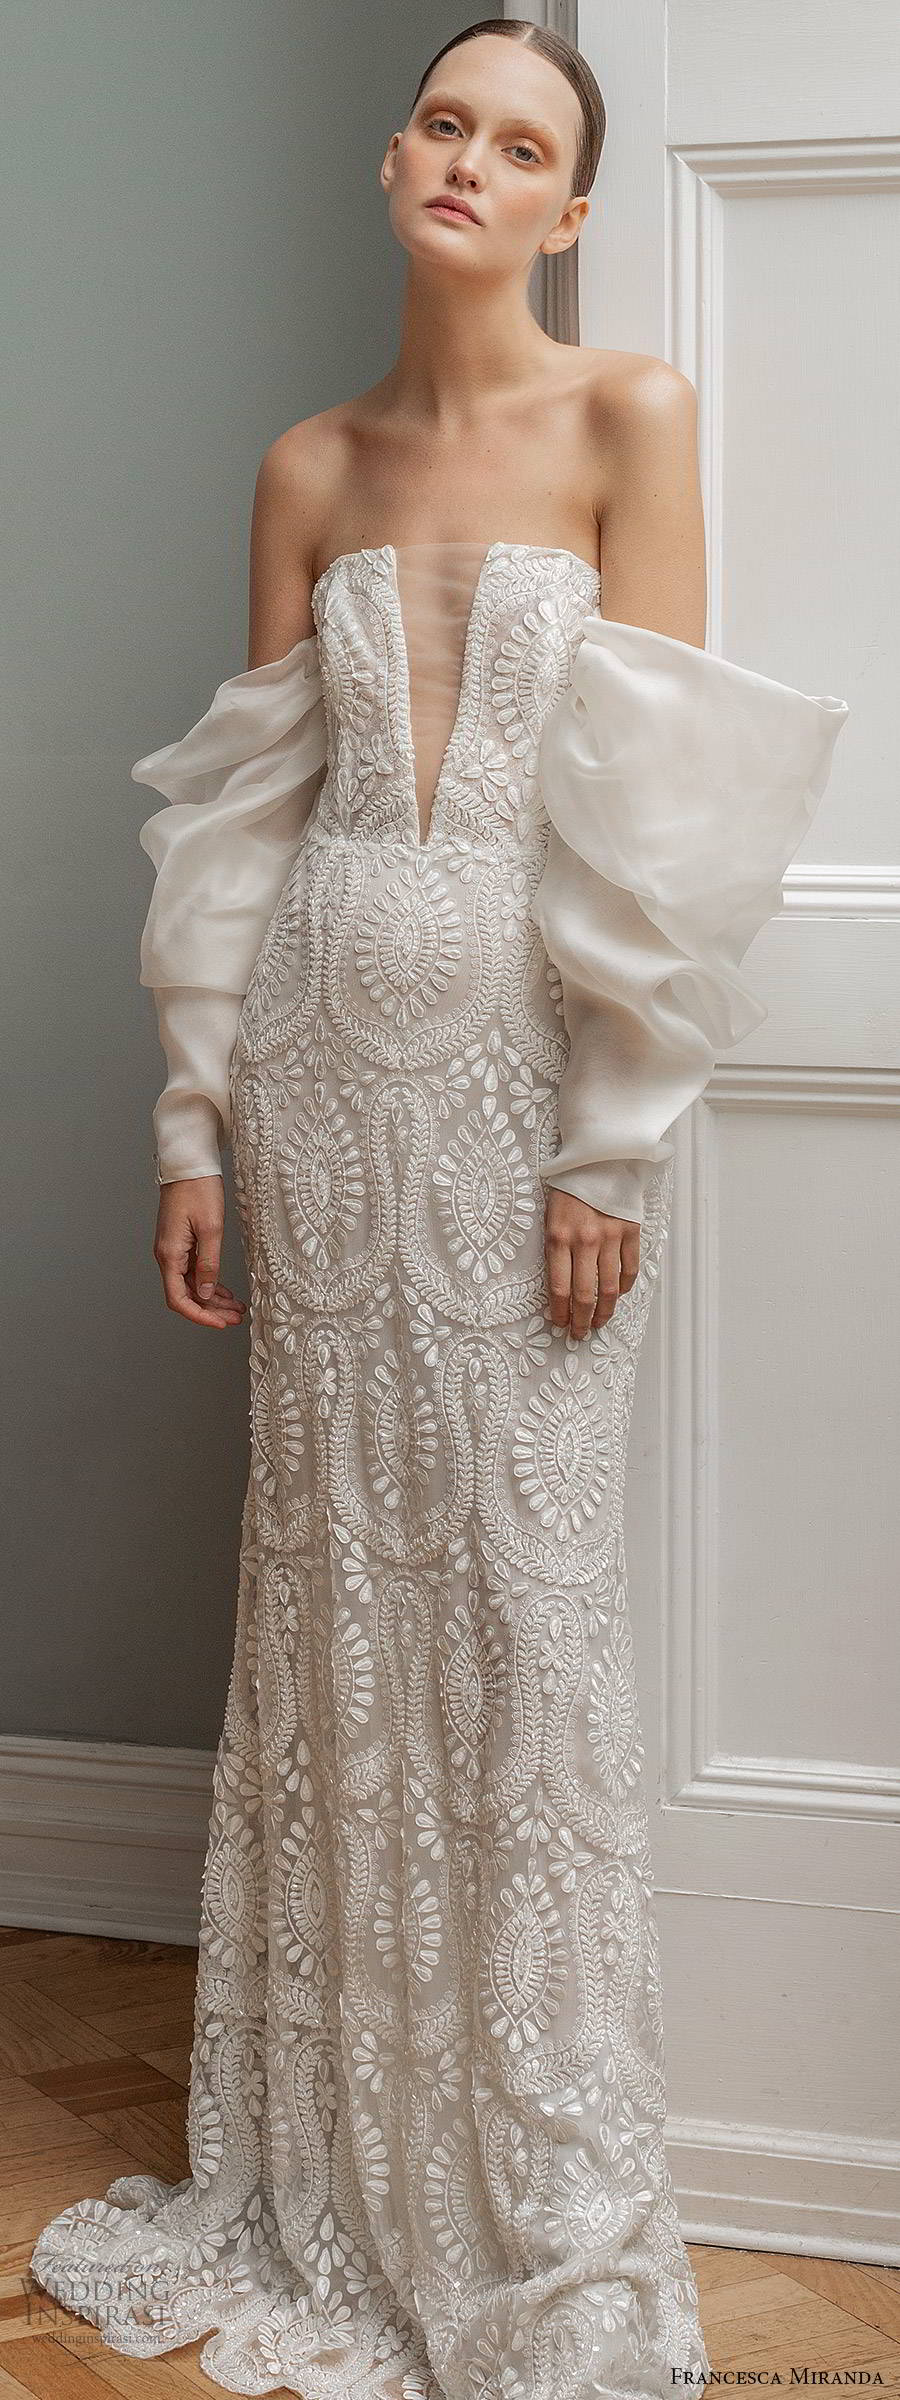 francesca miranda spring 2020 bridal detached long sleeves straight across illusion plunging neckline fully embellished lace fit flare mermaid sheath wedding dress modern sweep train (7) lv